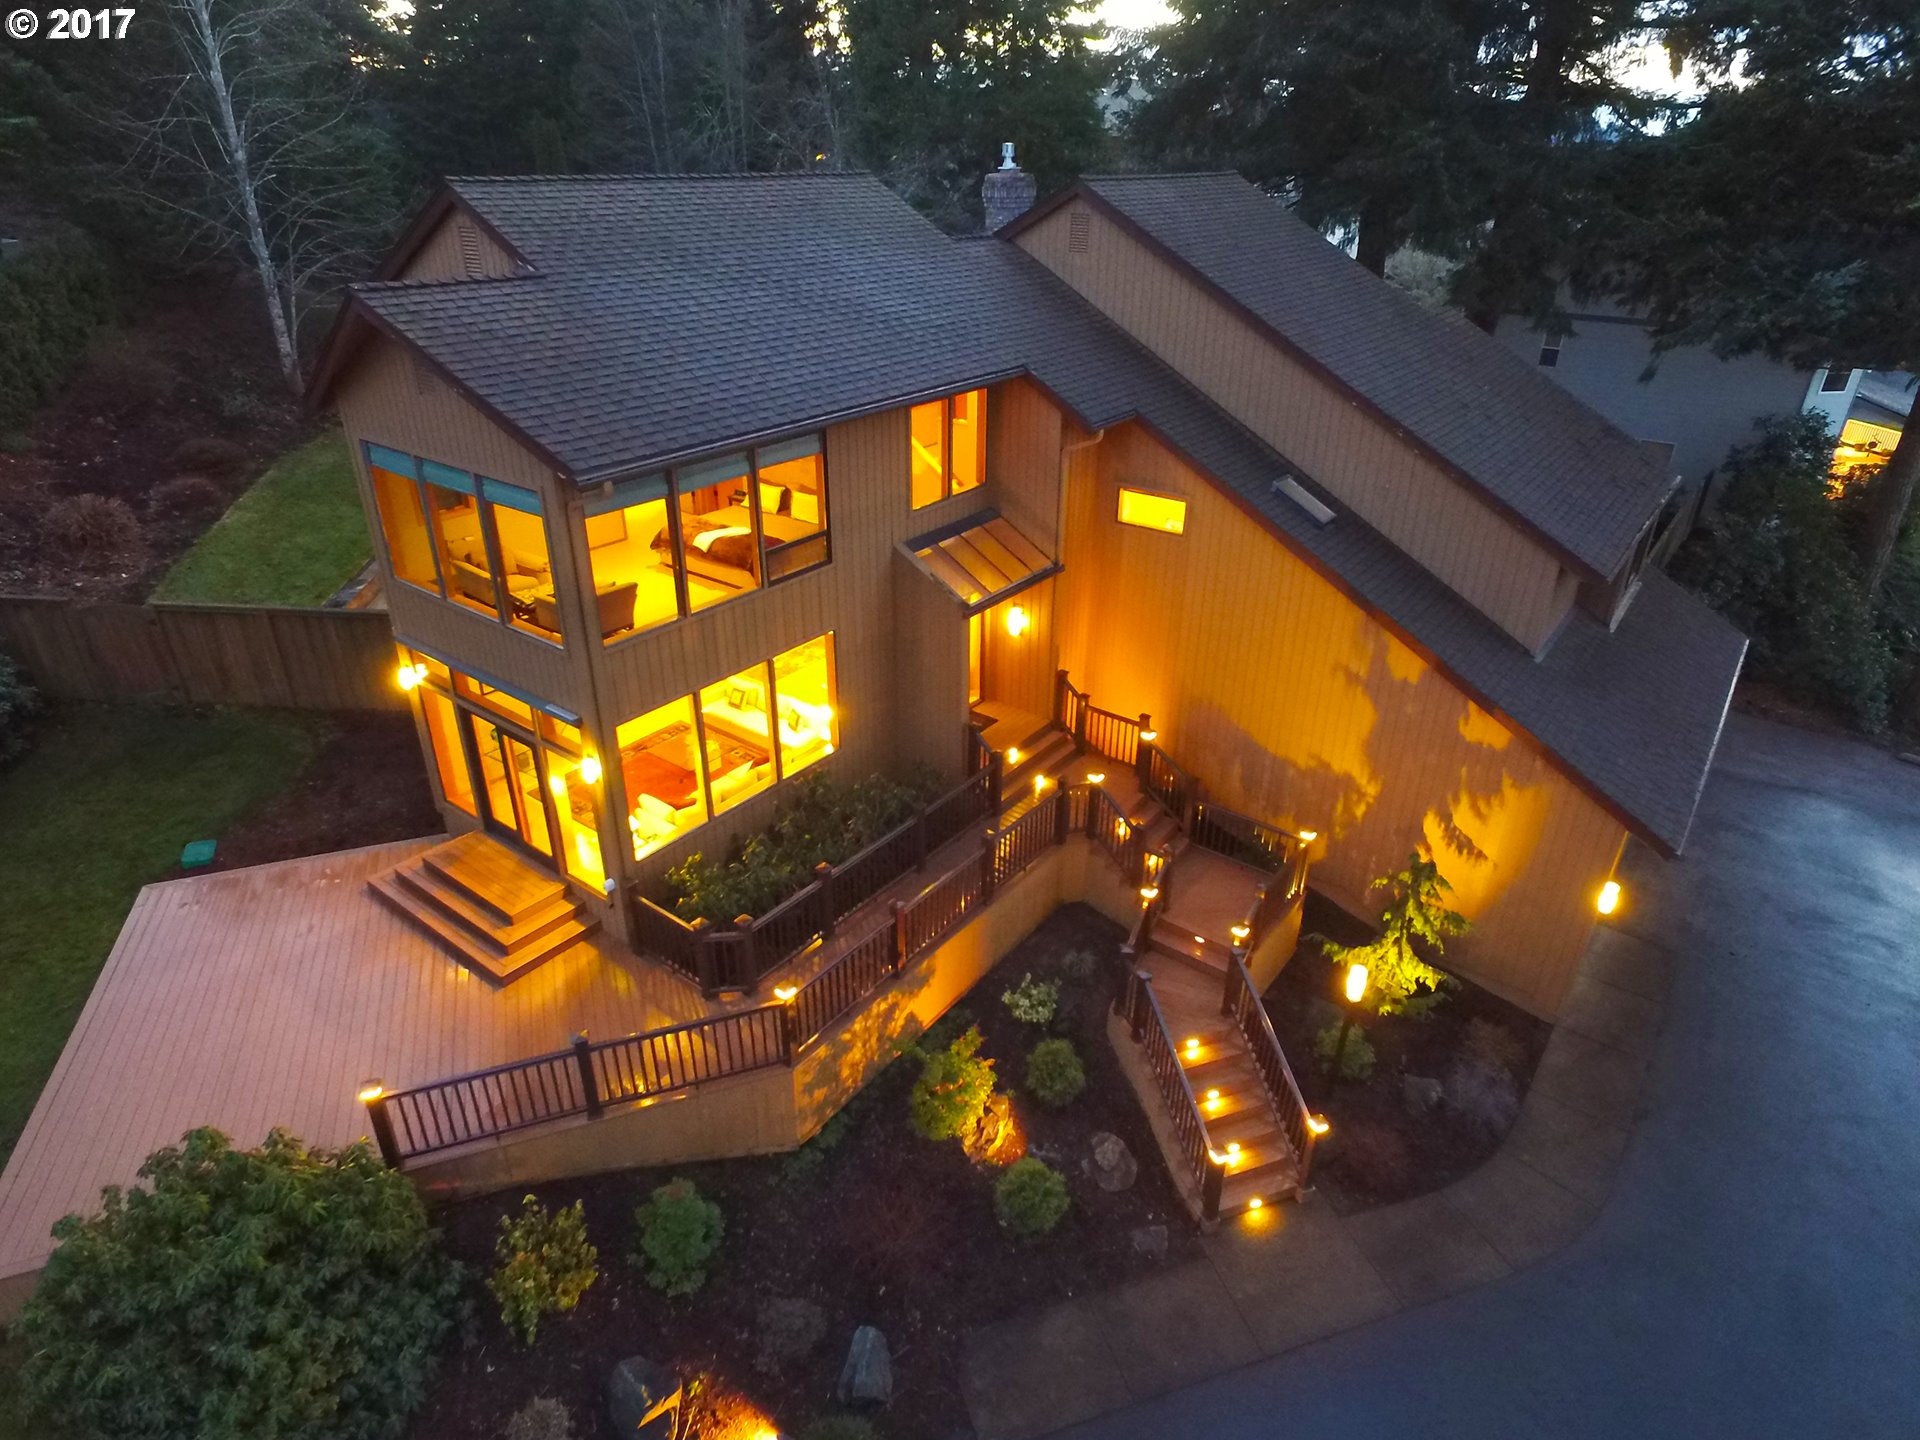 2630 W 29TH AVE, Eugene, OR 97405